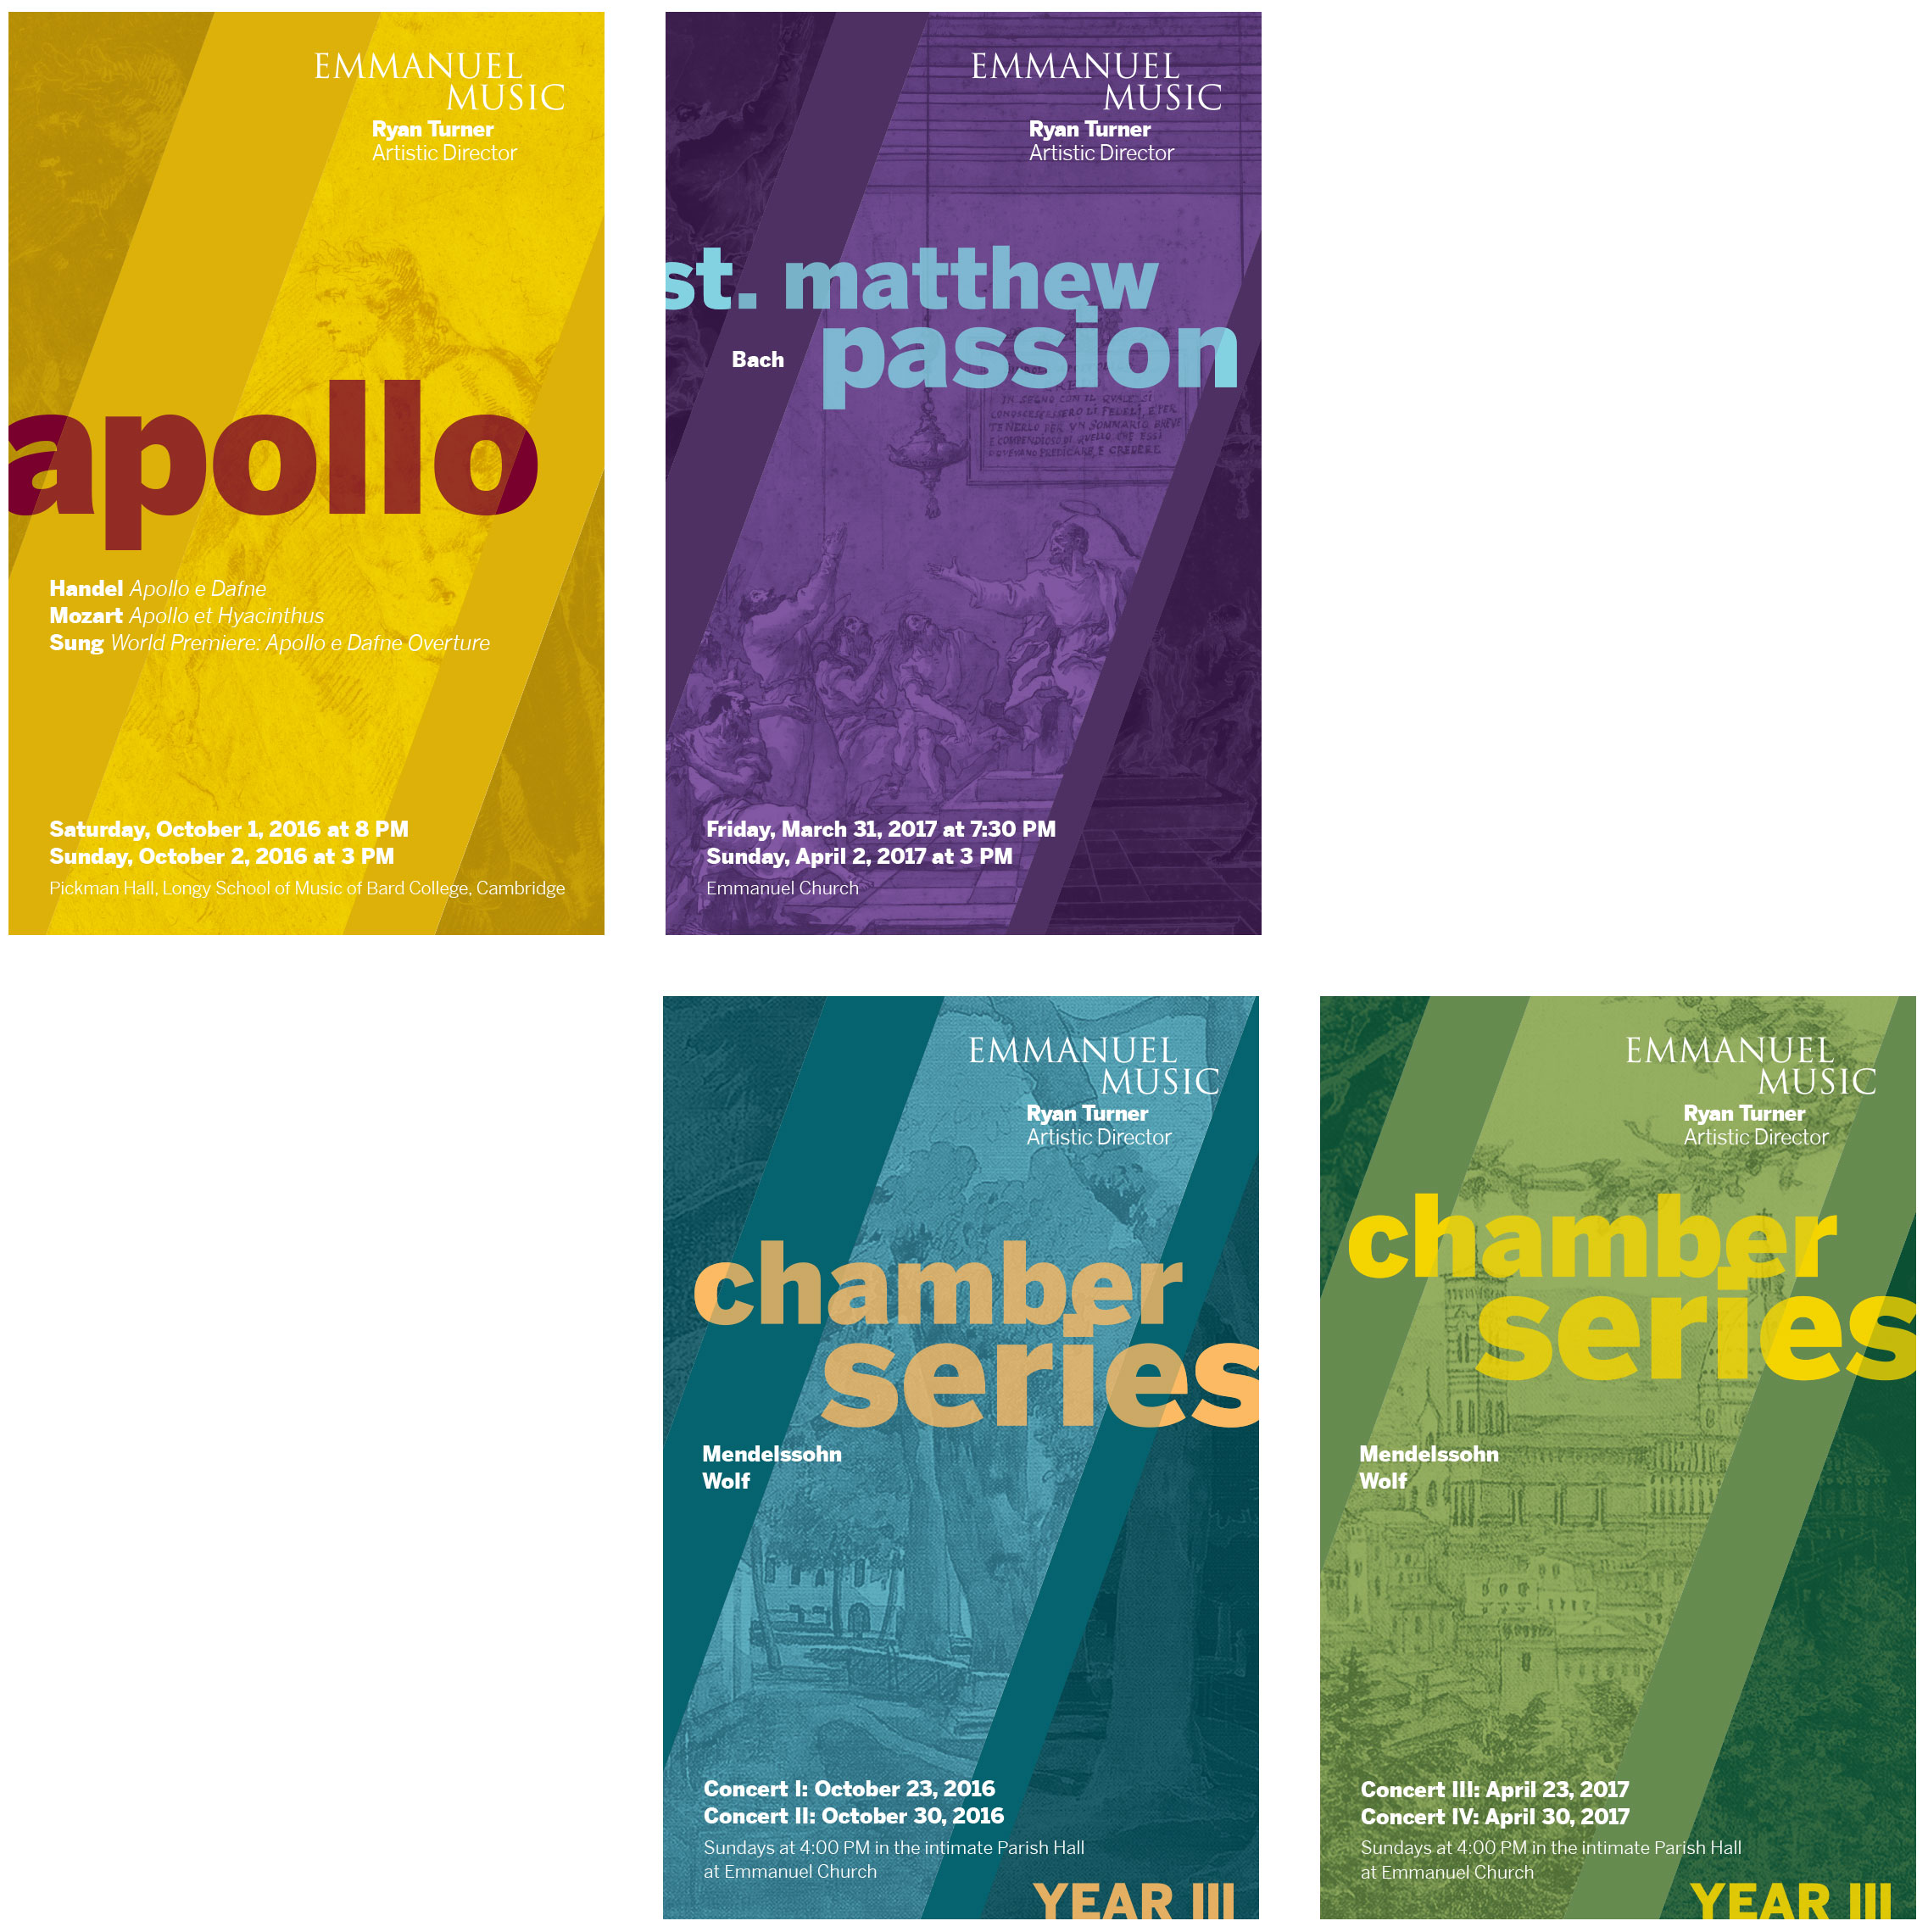 Emmanuel Music postcards: Apollo, St. Matthew Passion, Chamber Series